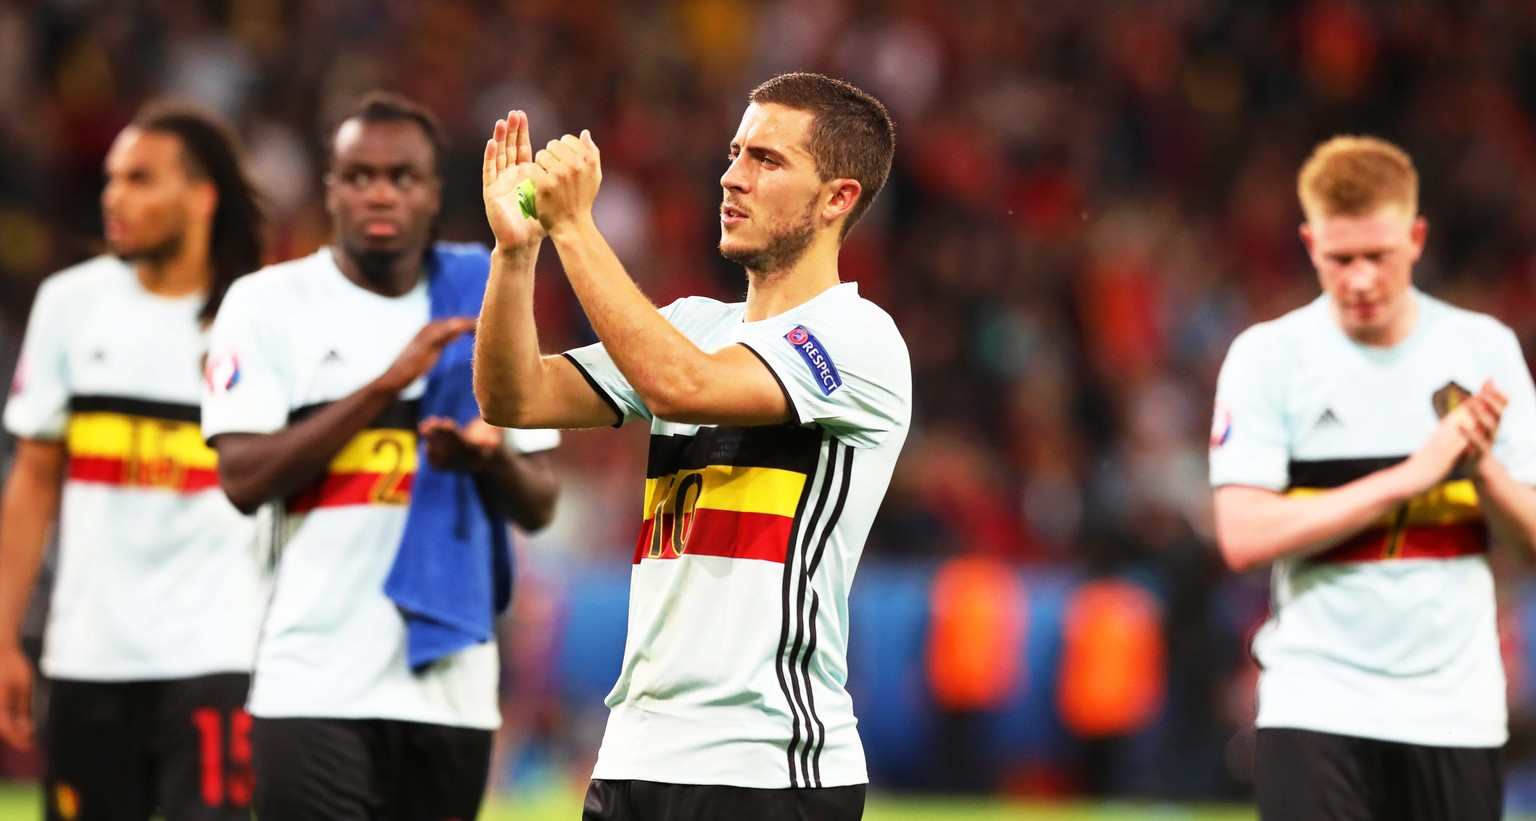 epa05402494 Eden Hazard (C) of Belgium and his teammates applaud fans after the UEFA EURO 2016 quarter final match between Wales and Belgium at Stade Pierre Mauroy in Lille Metropole, France, 01 July 2016. Wales won 3-1.